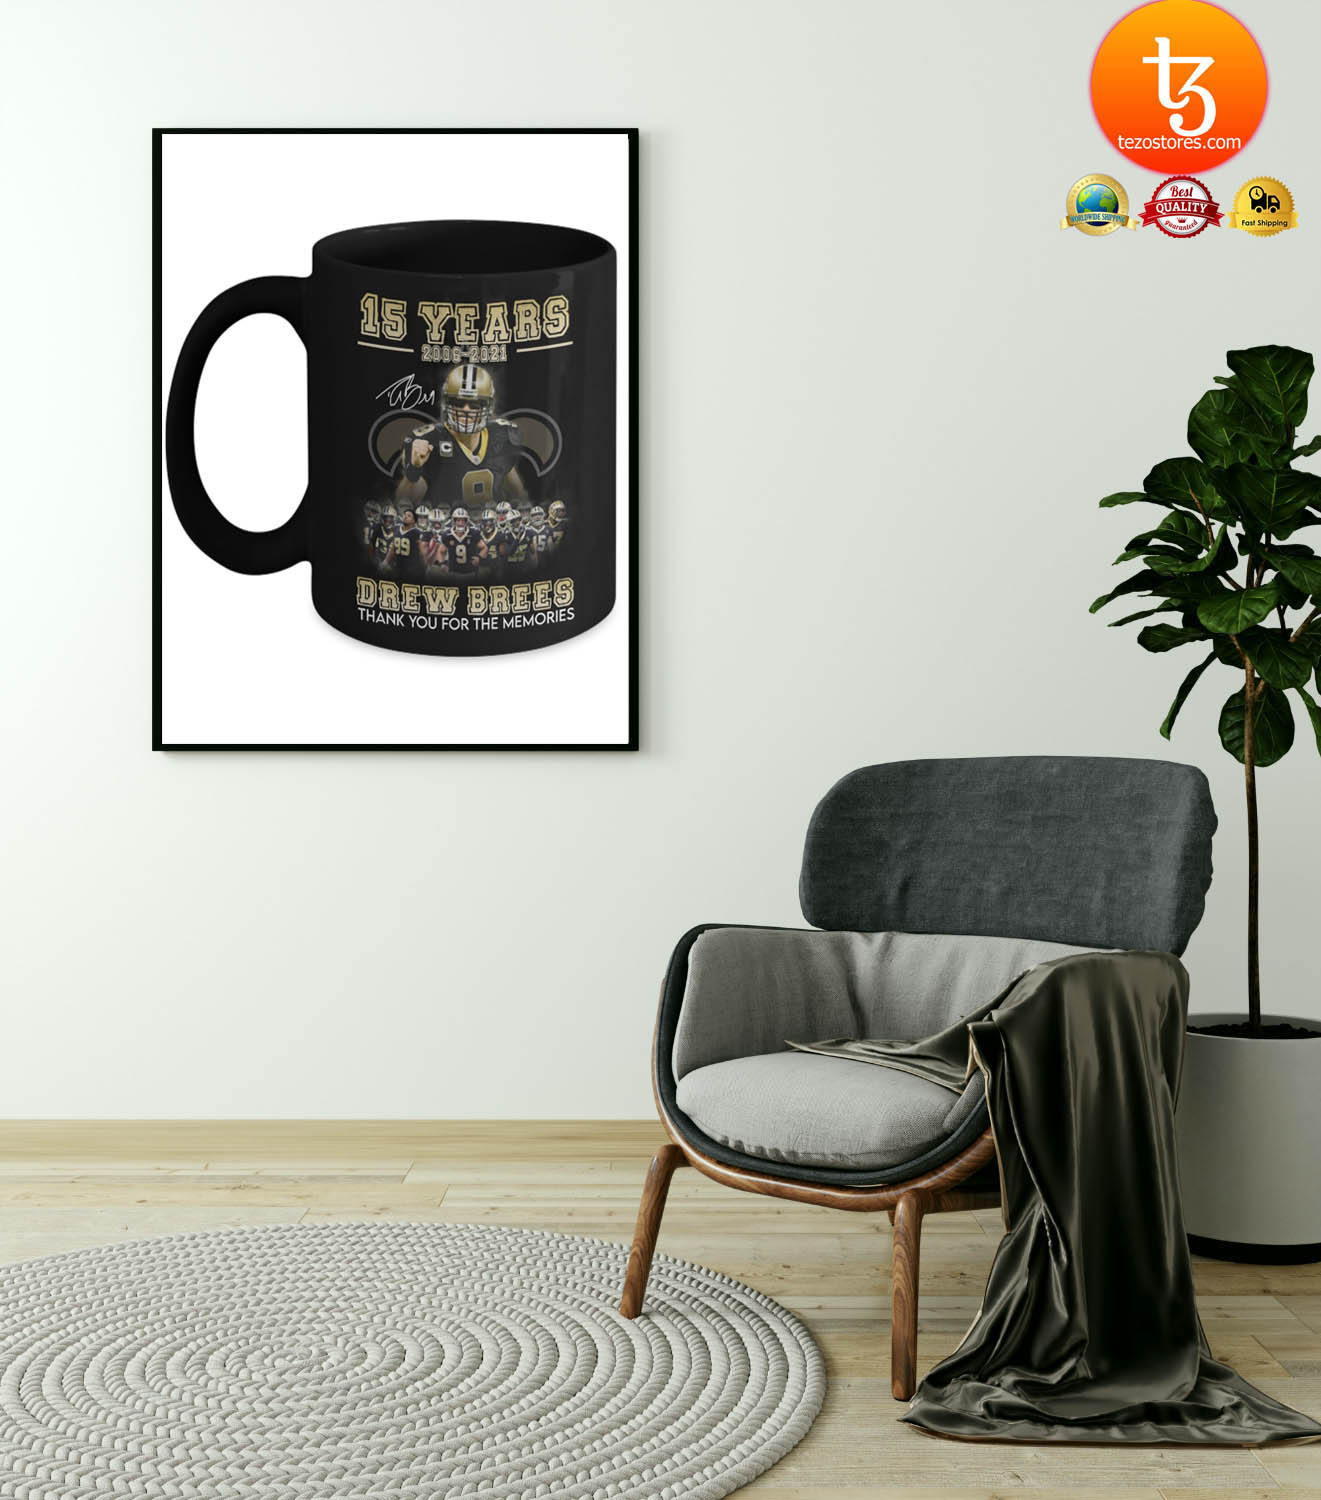 15 years 2006 - 2021 drew brees thank you for the memories mug 21